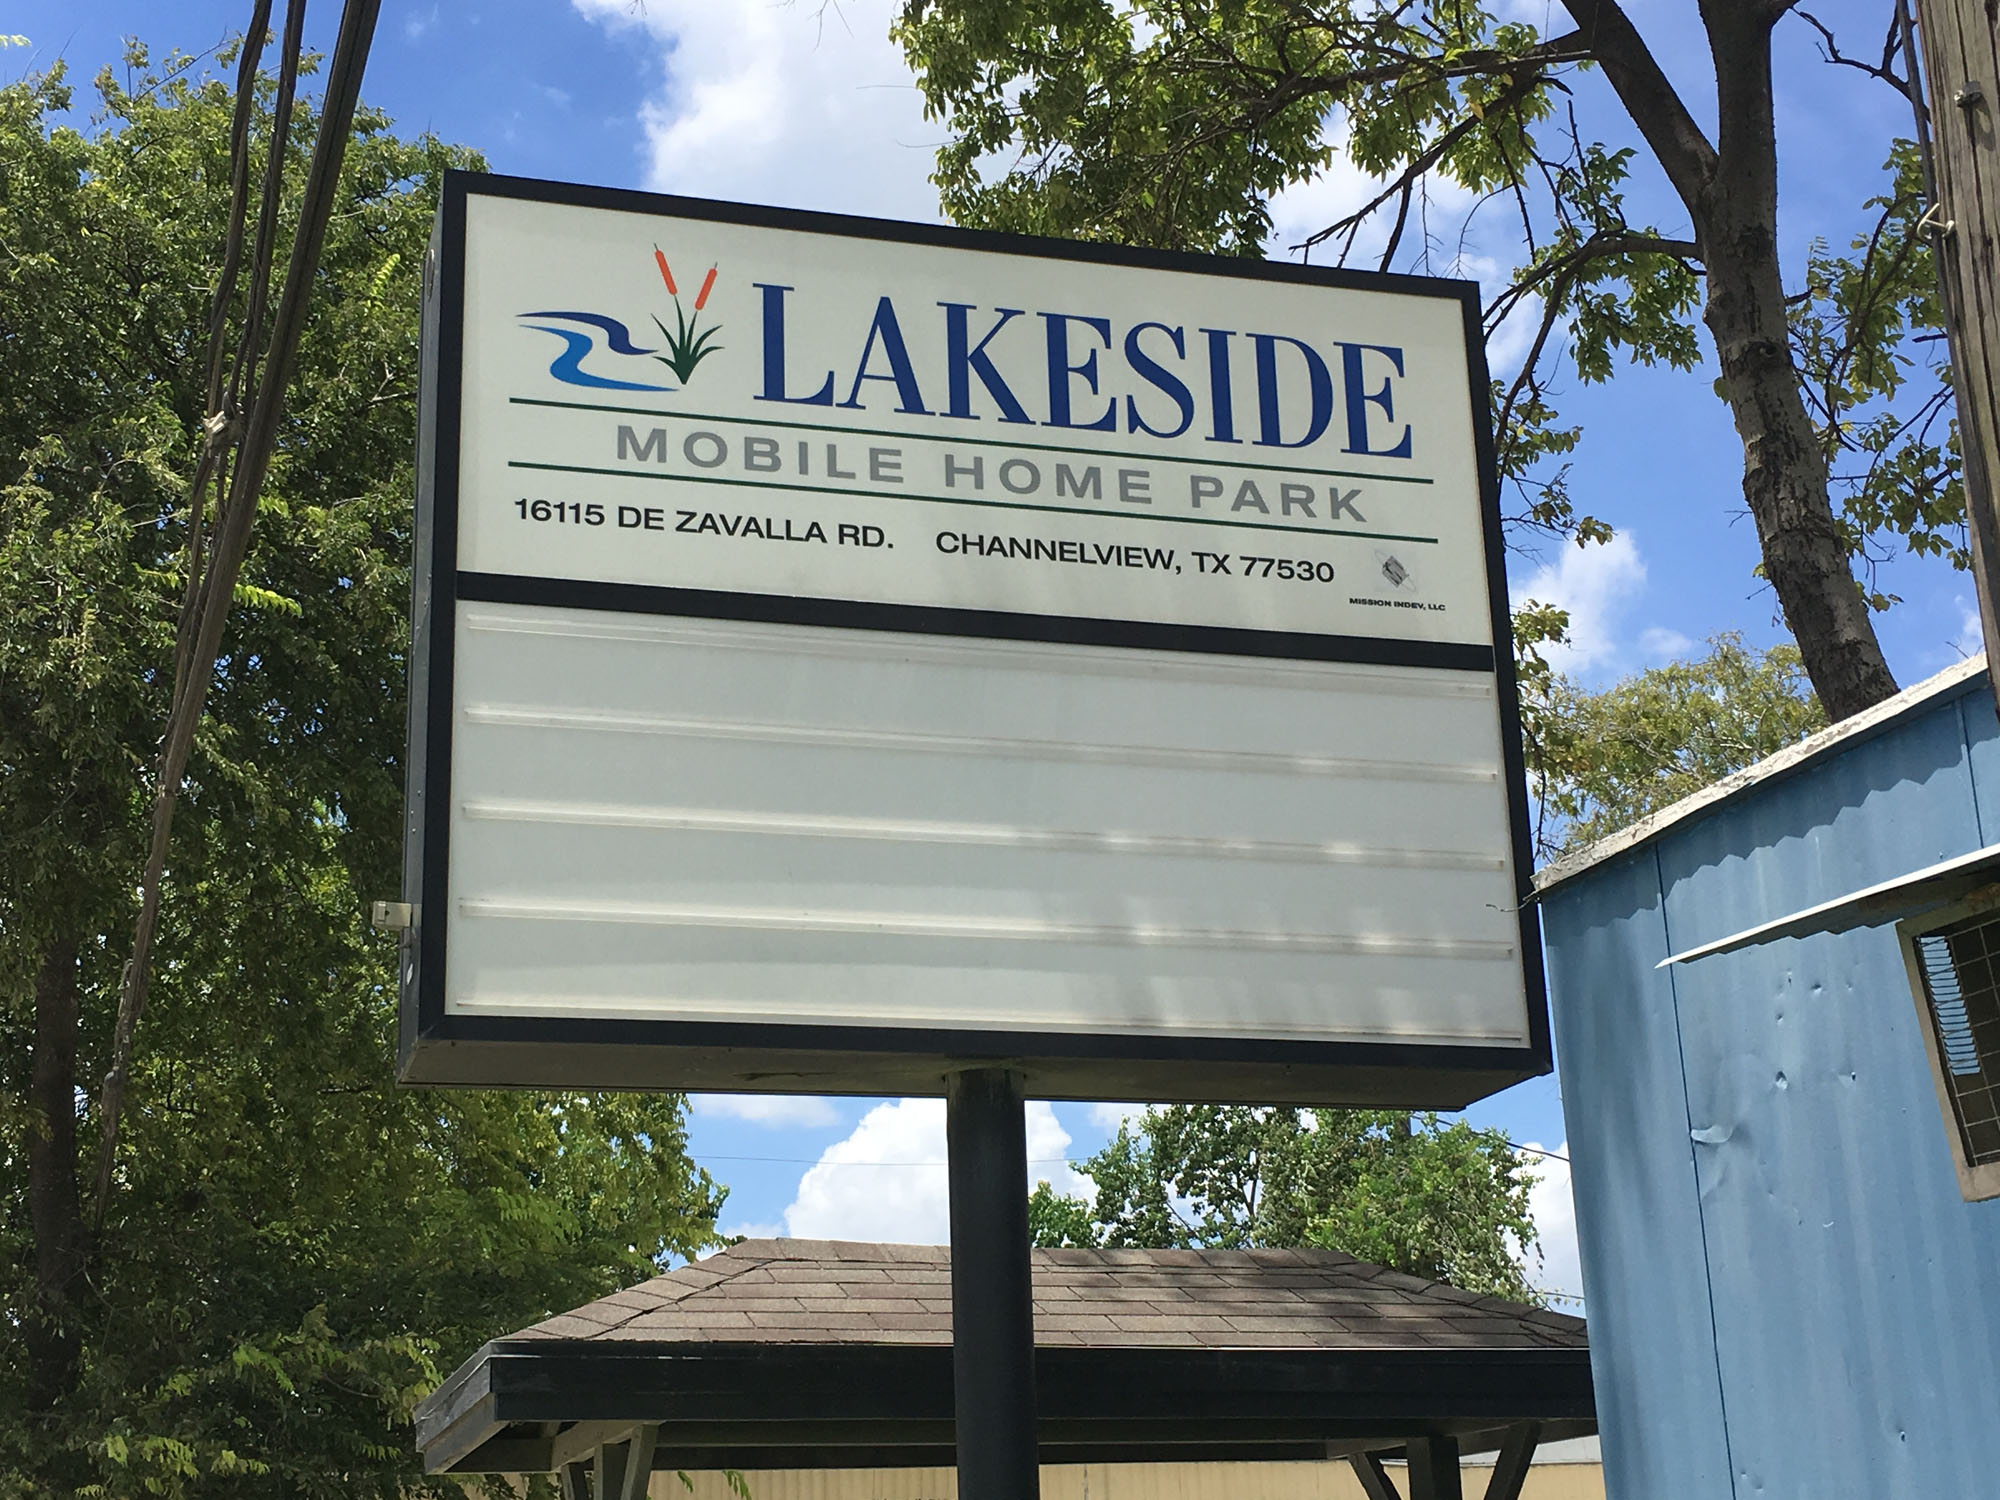 Lakeside Mobile Home Park